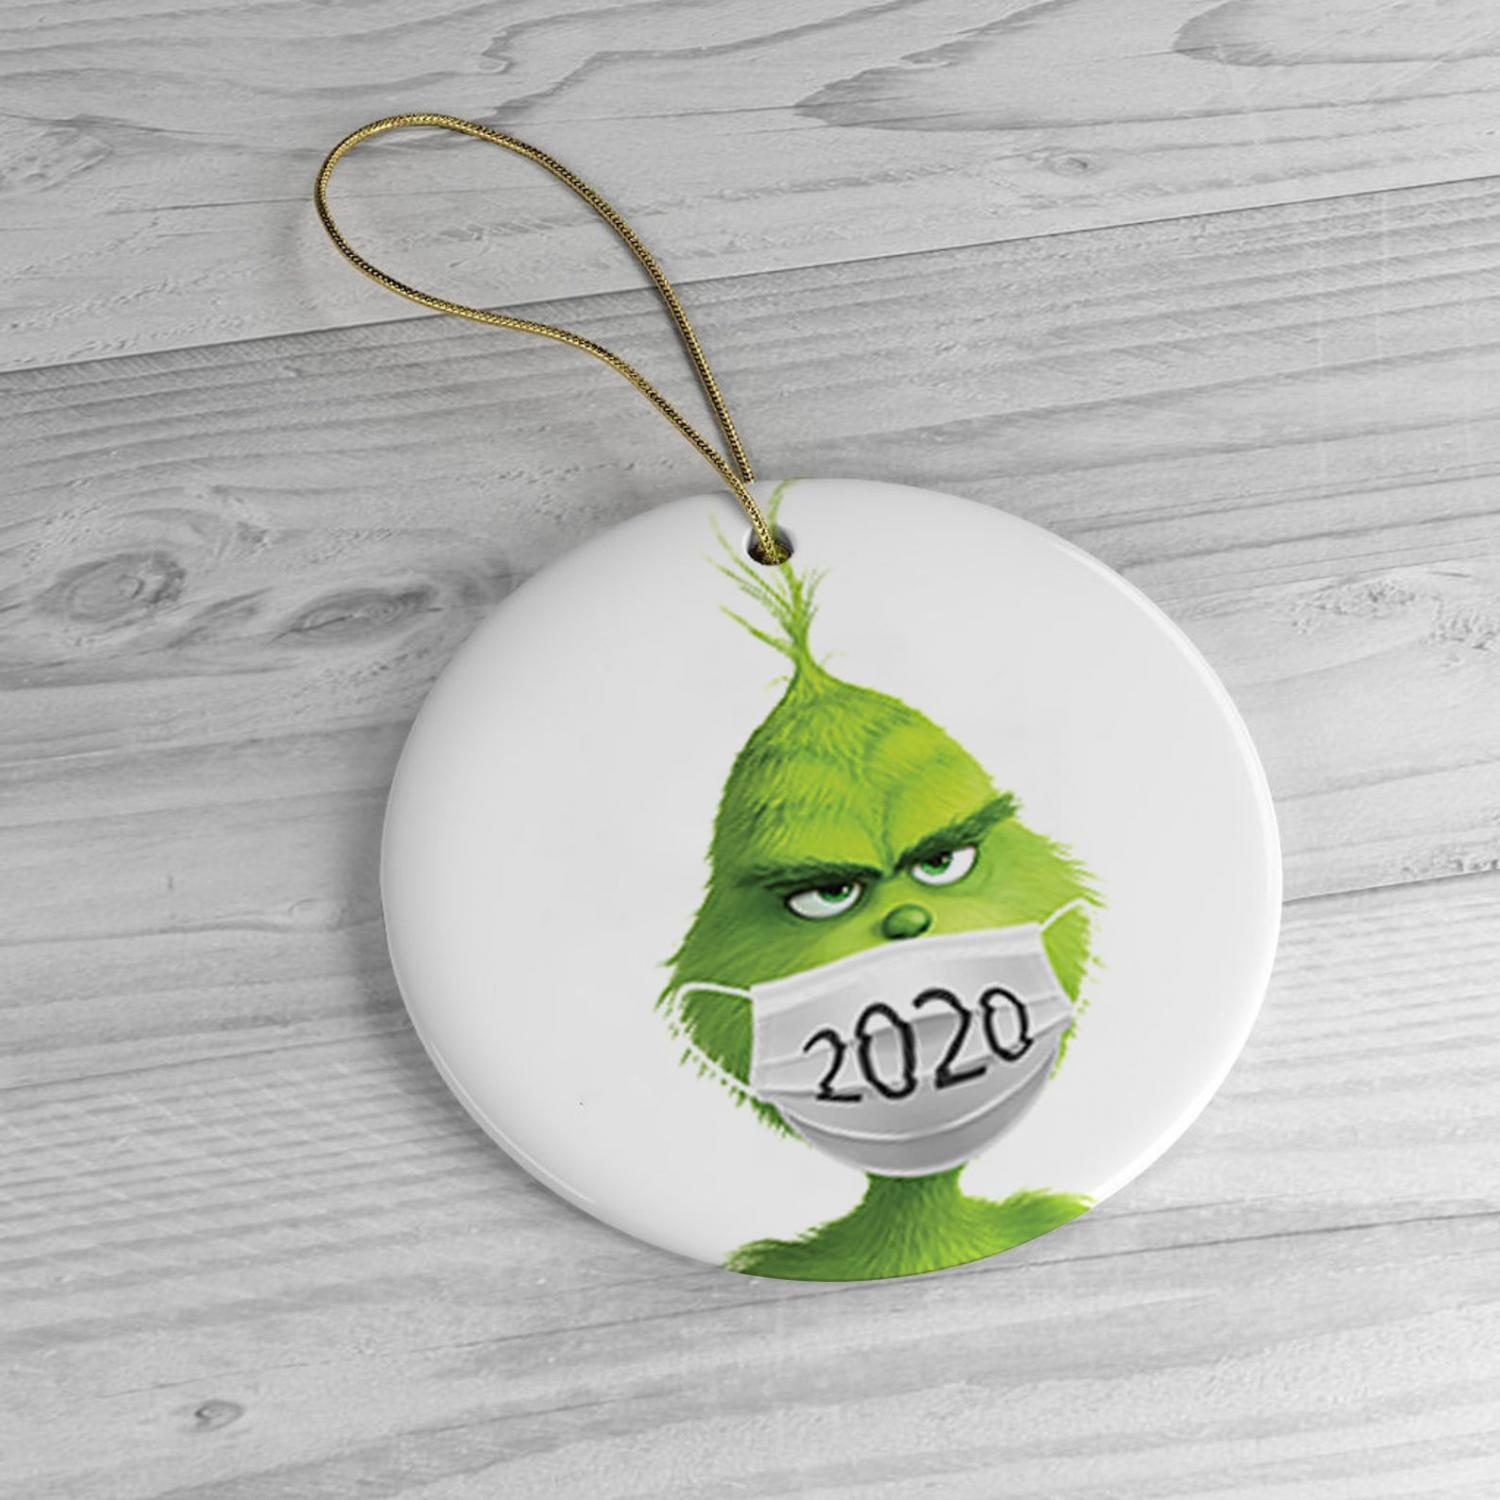 The Grinch In a Facemask 2020 Christmas Ornament